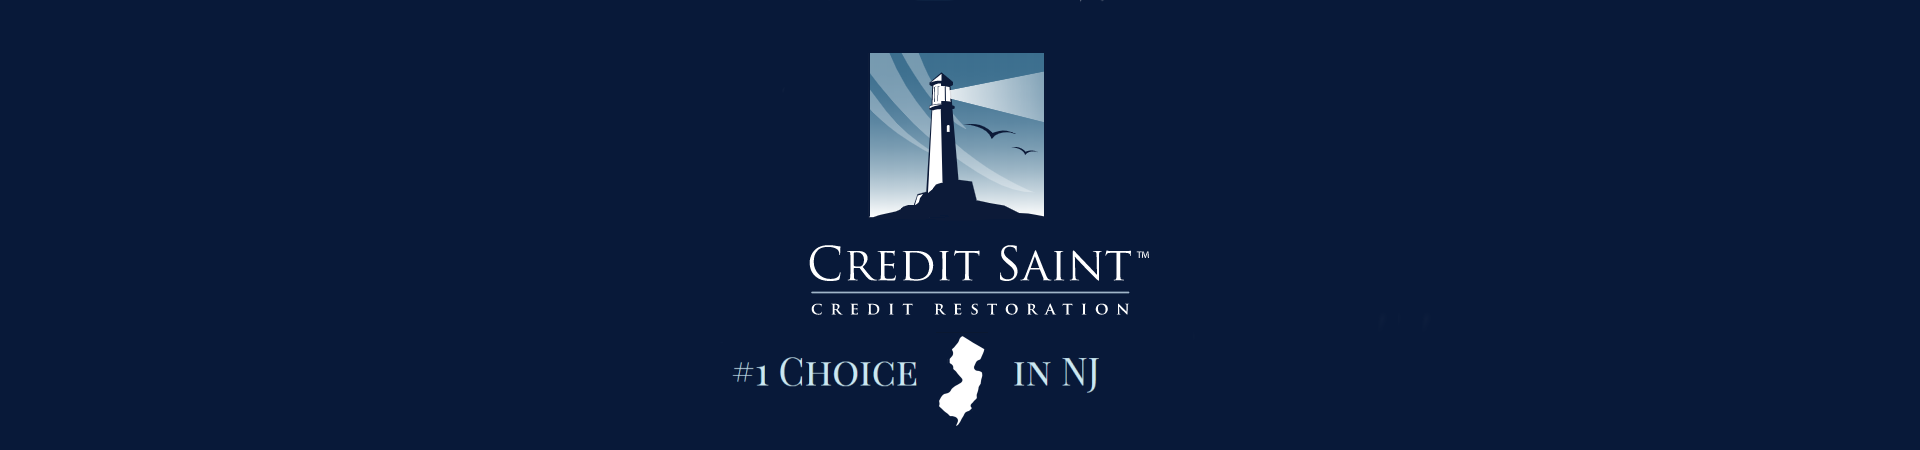 Credit Saint best credit repair company in NJ